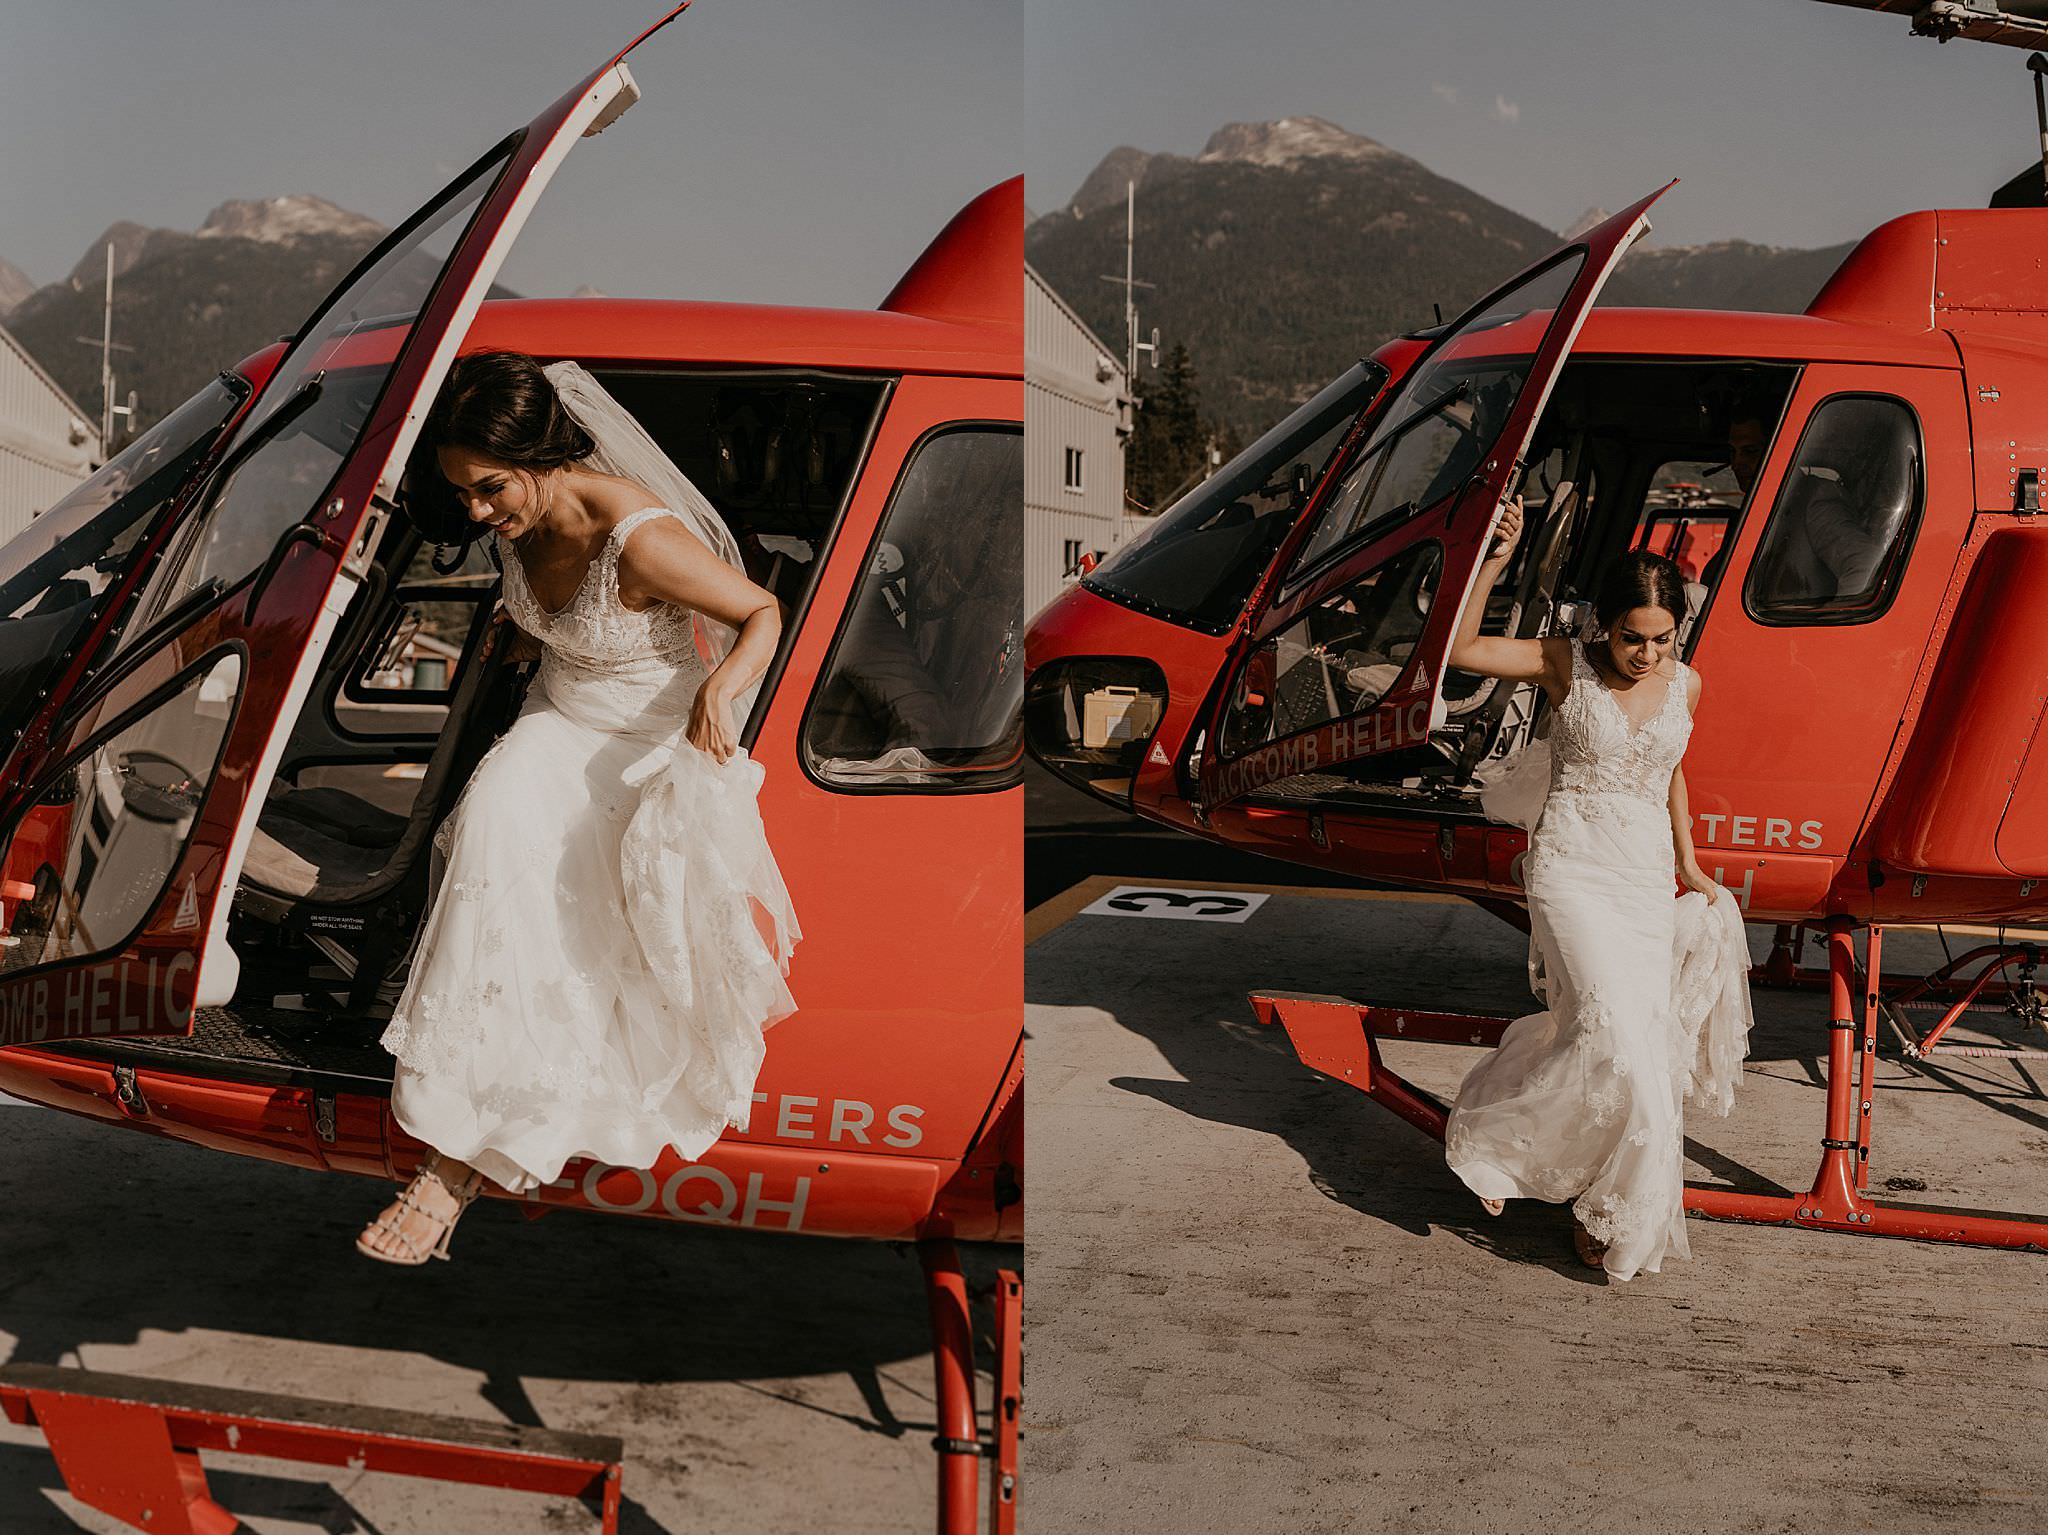 whistler-mountain-helicopter-elopement-wedding_0116.jpg